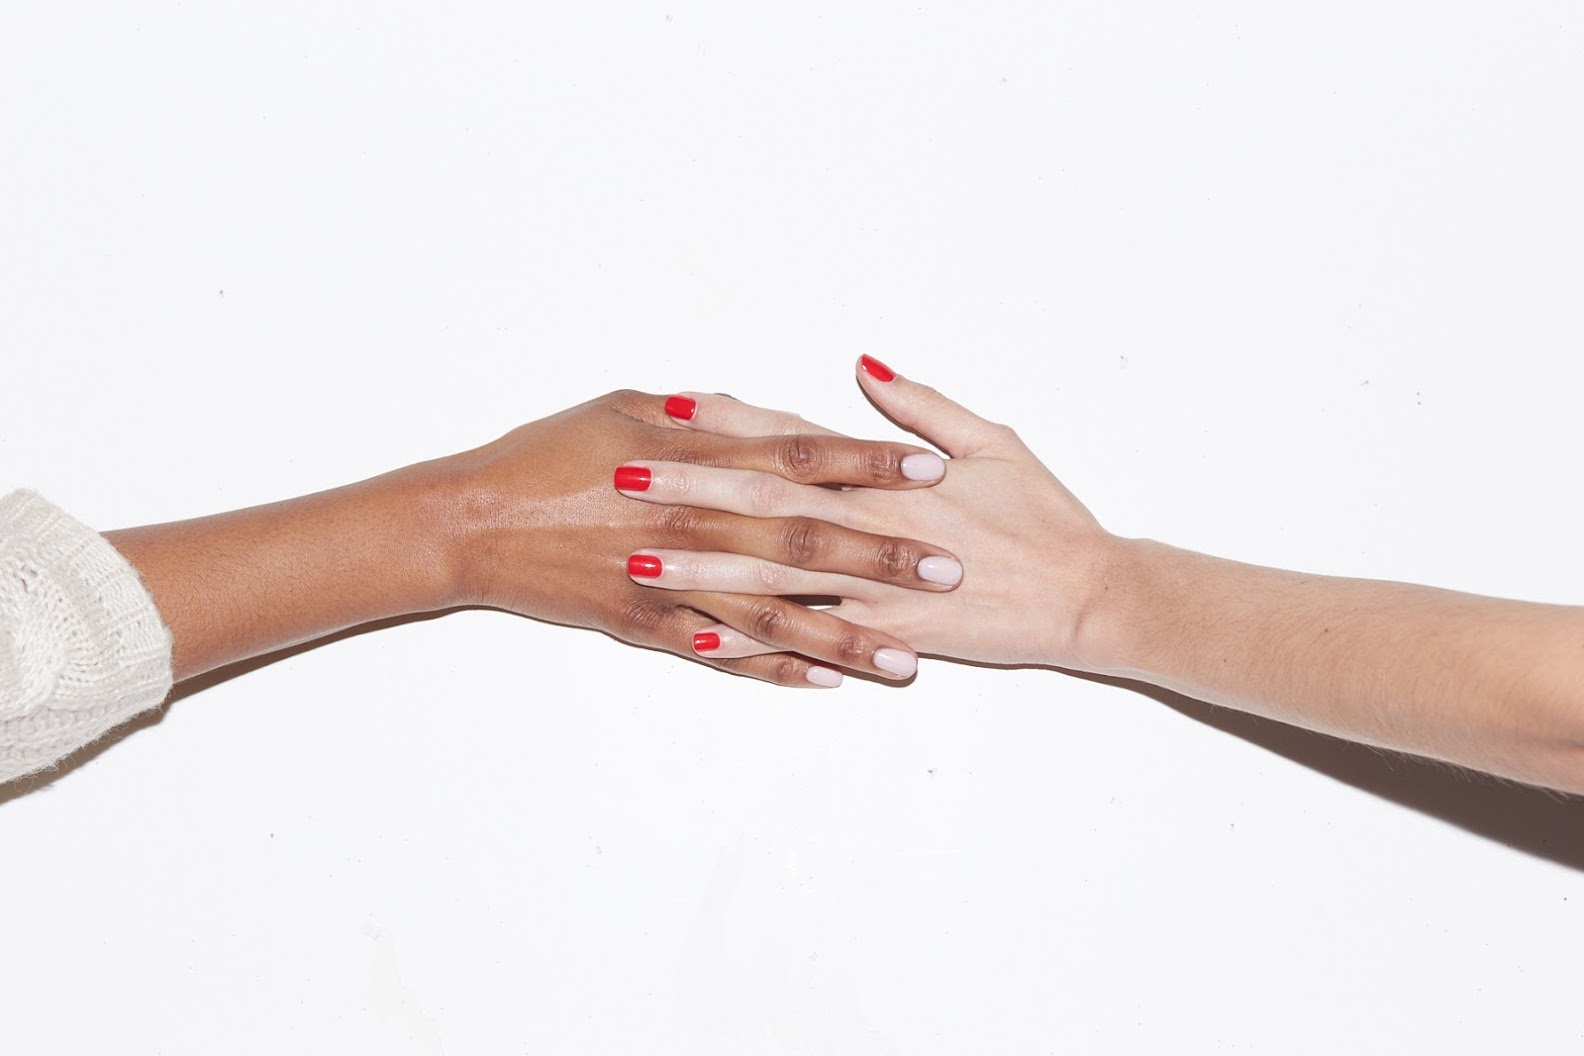 Gel Couture - for essie's new line of nailpolish, we were tasked to create a video and content to promote and excite essie's fan base about the new at-home gel product. Branding for this product was aimed to the older more sophisticated essie fan.